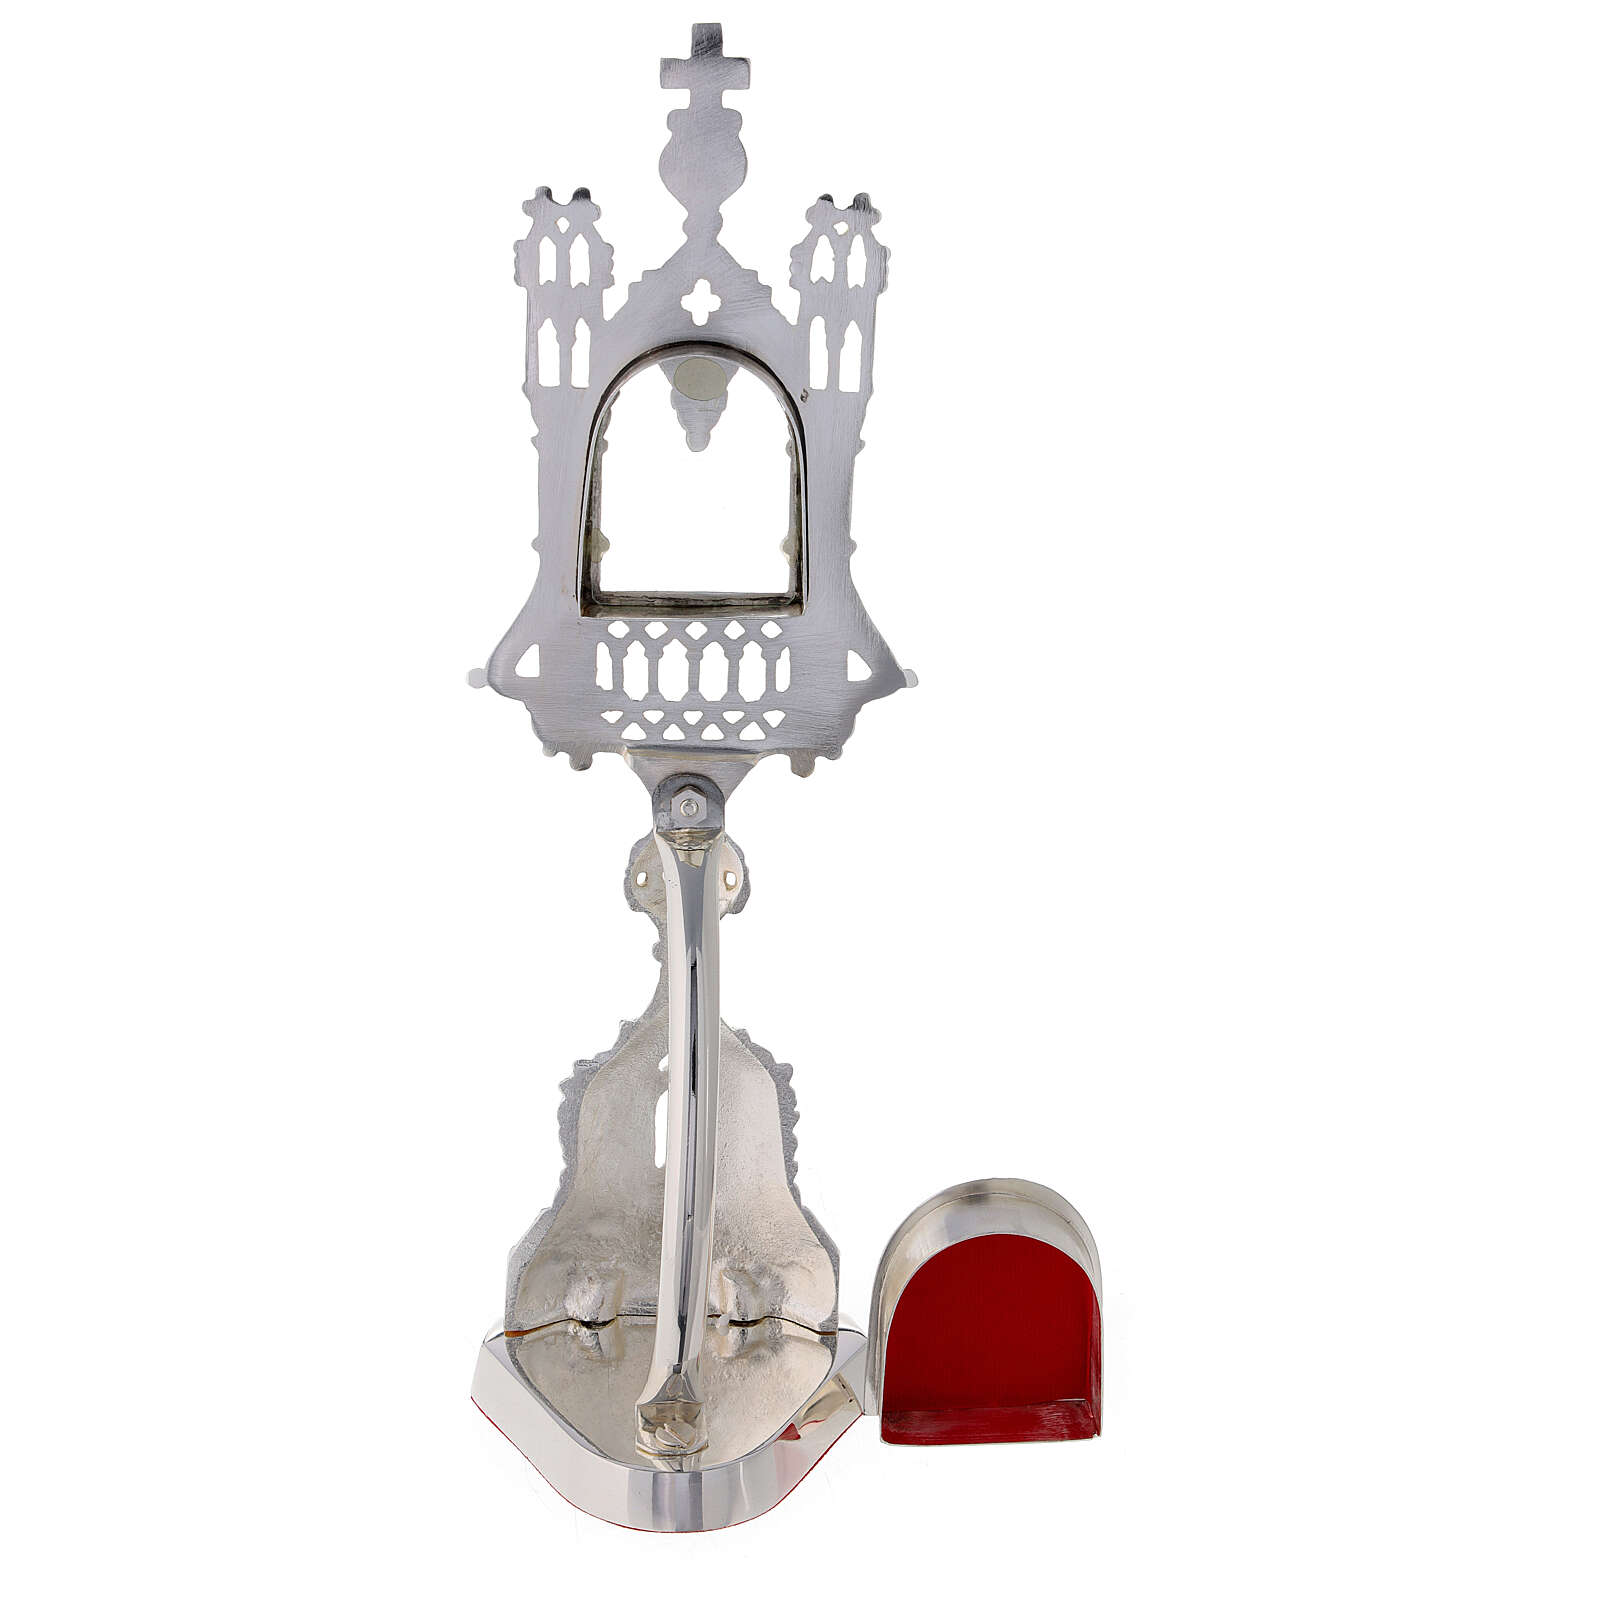 Neogothic reliquary in silver-plated brass 11 in 4